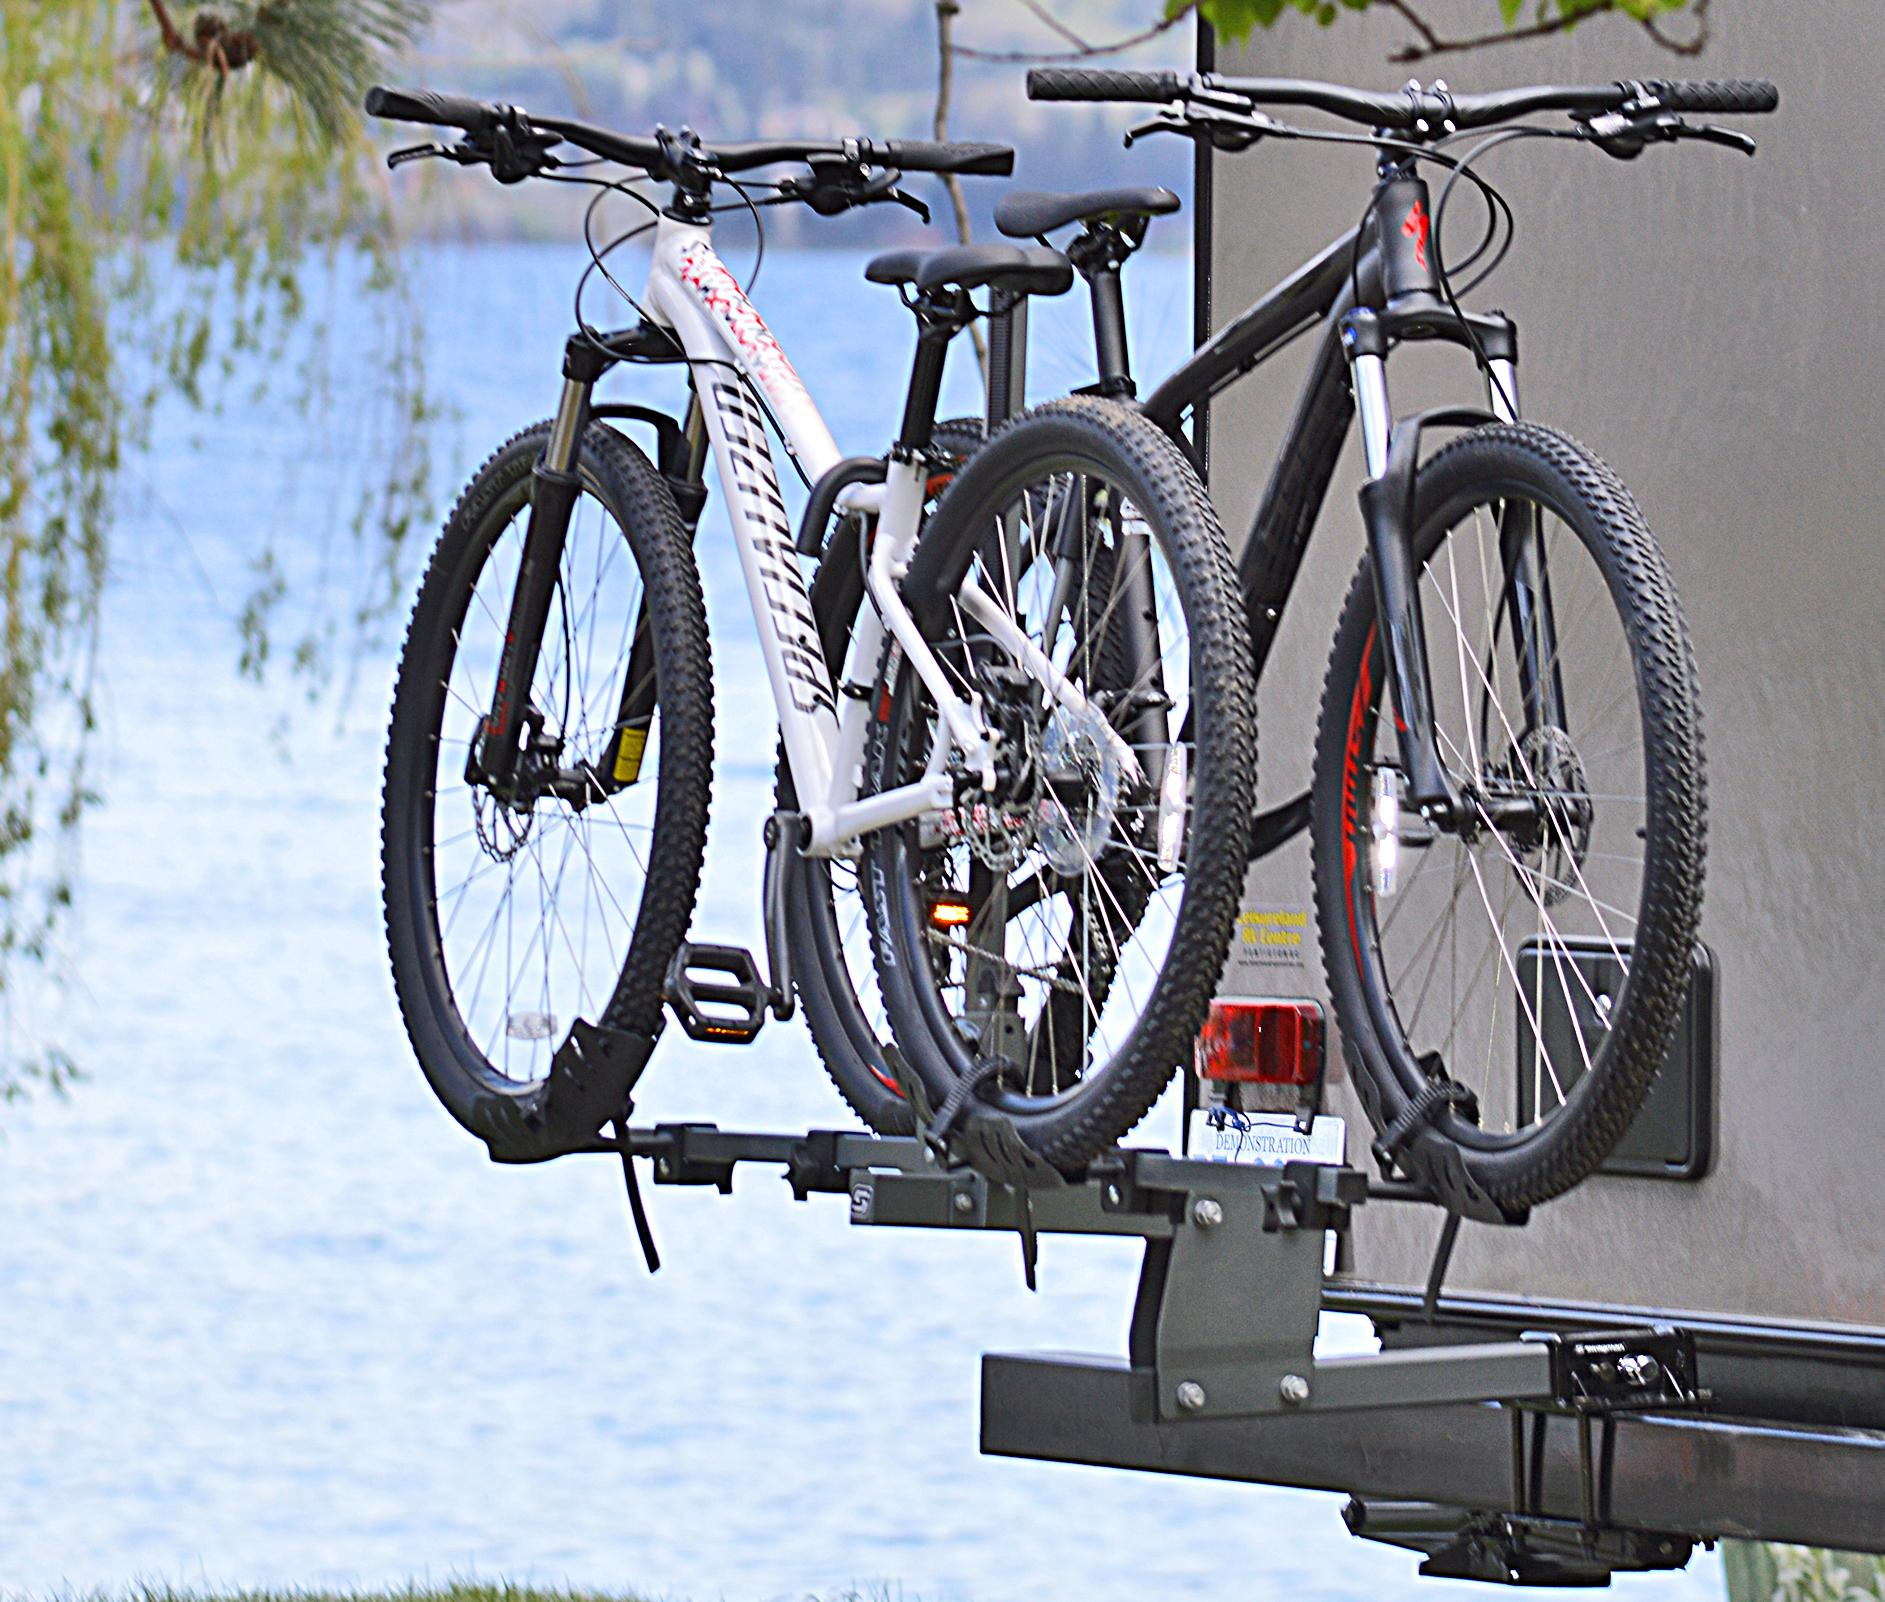 Bike Camper Trailer Amazoncom Swagman Bicycle Carriers Non Folding Bike Dispatch